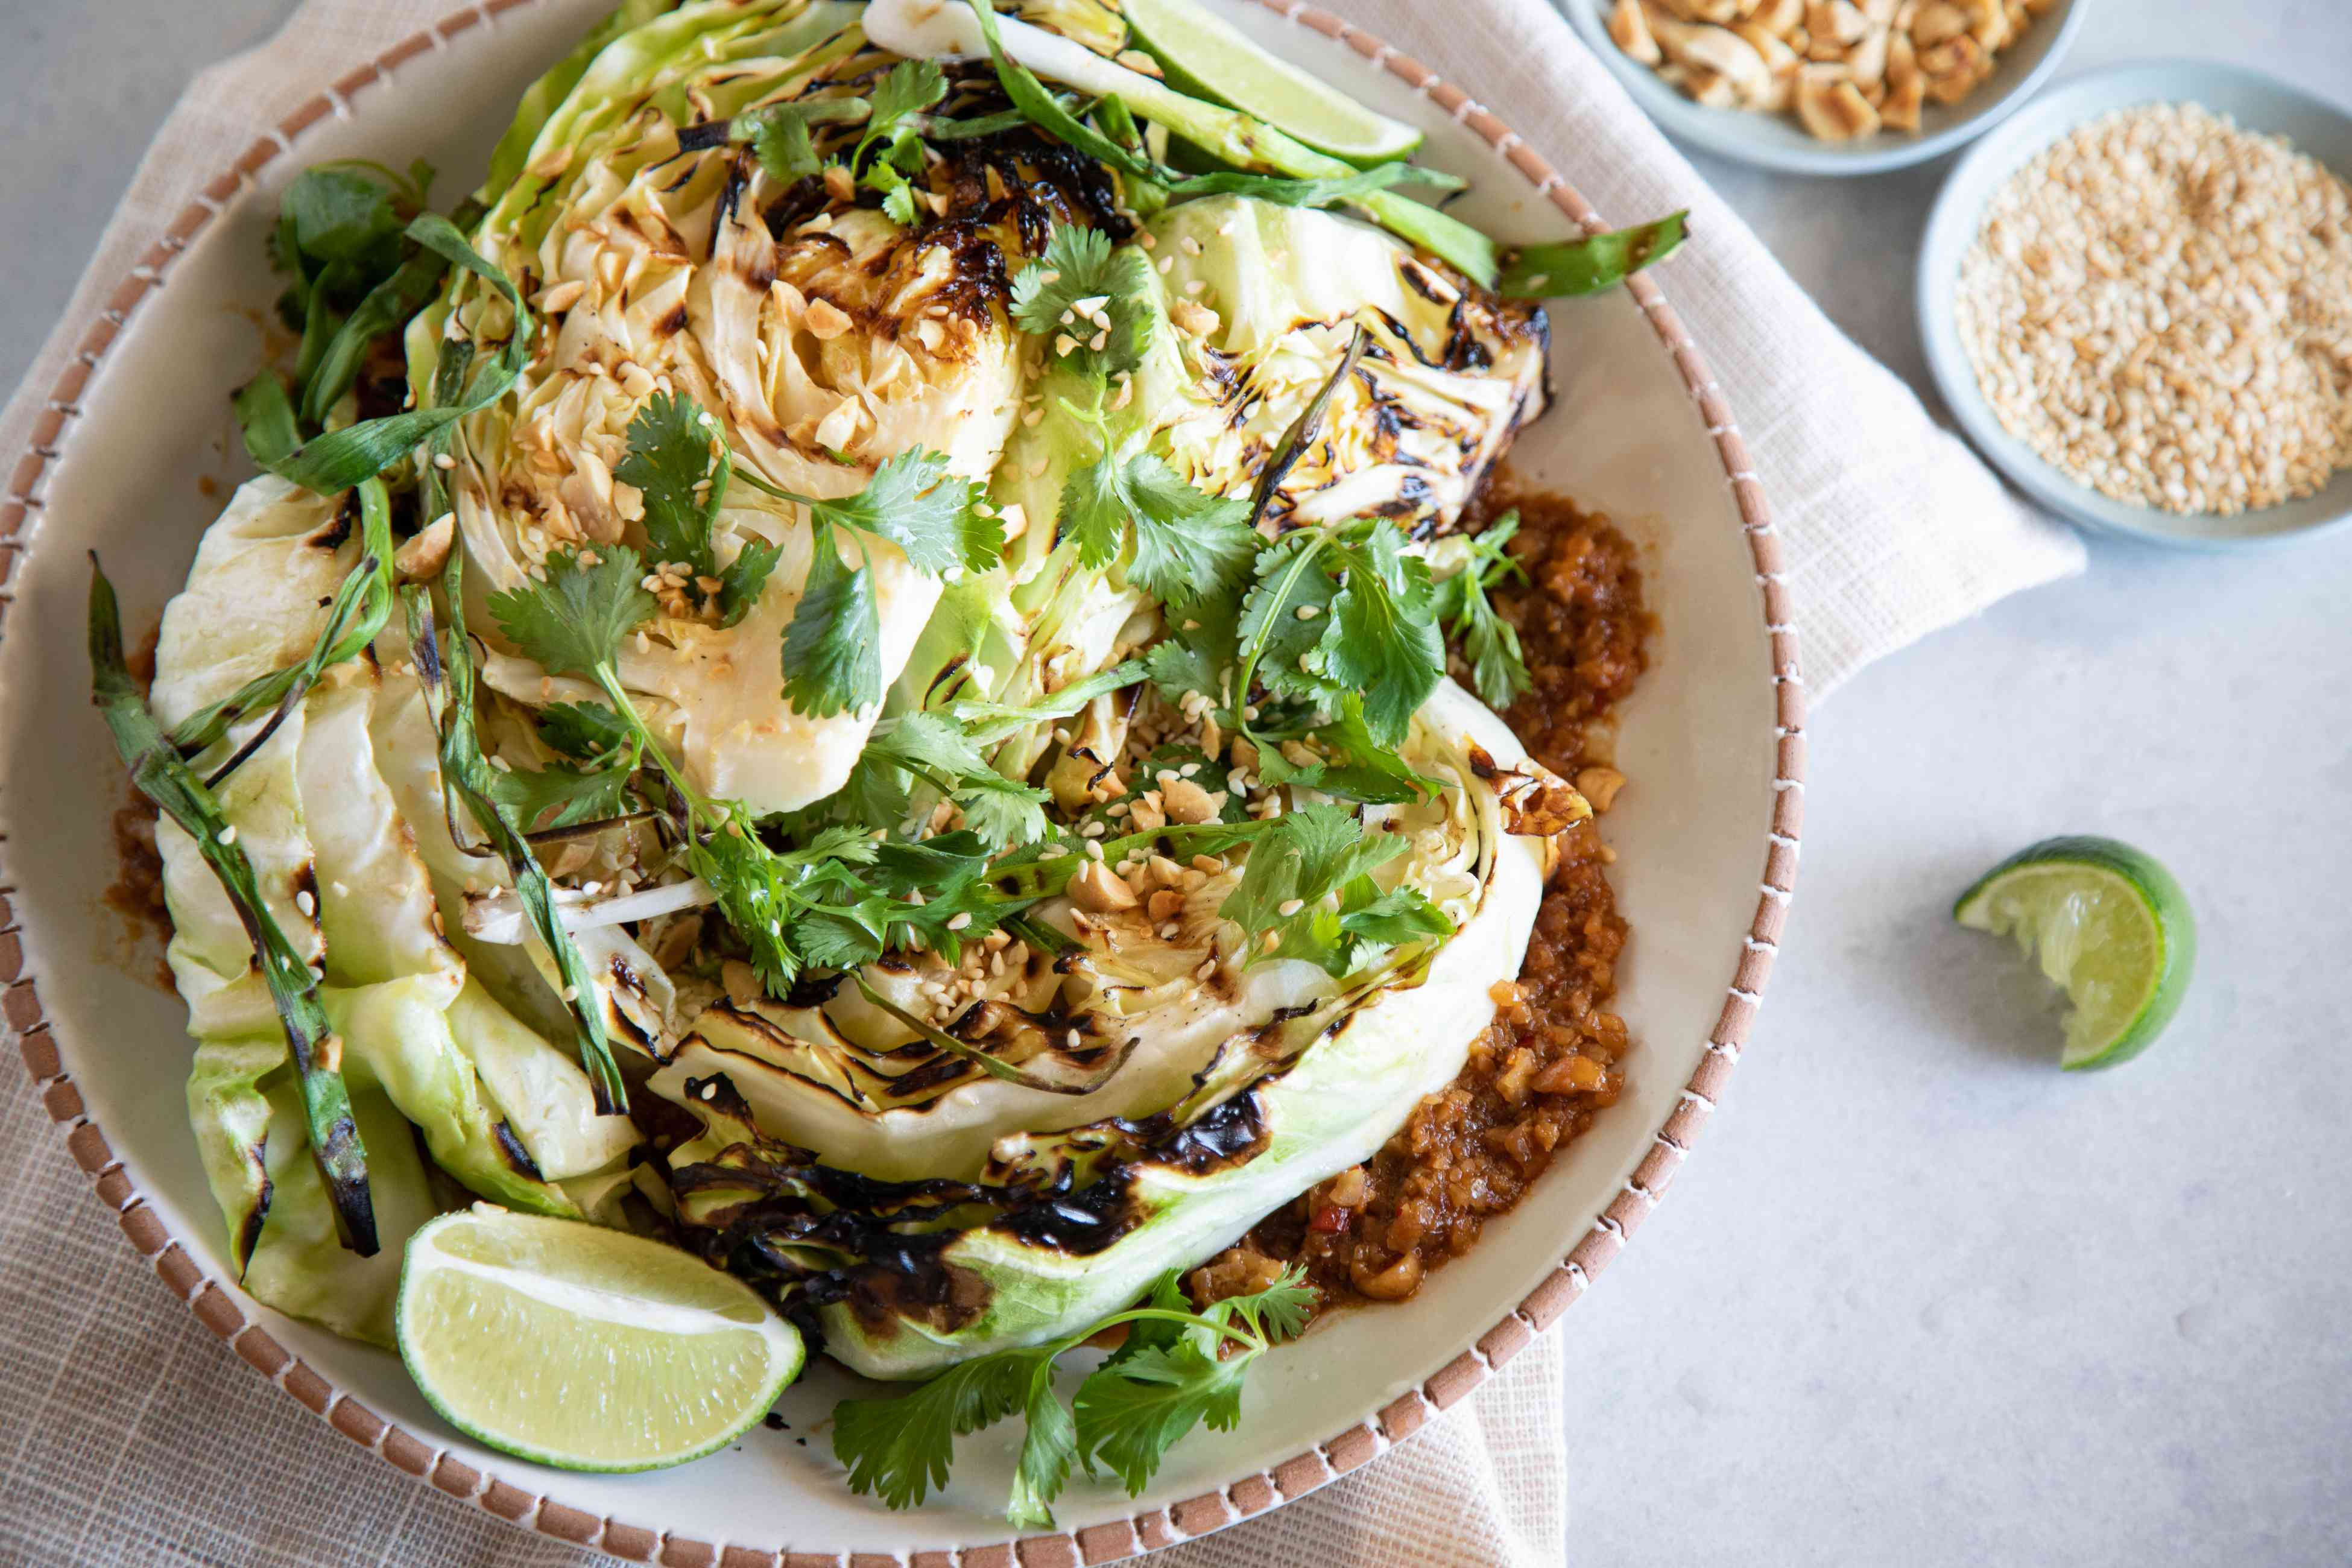 Grilled cabbage with peanut satay sauce on a plate with toppings in small bowls around it.